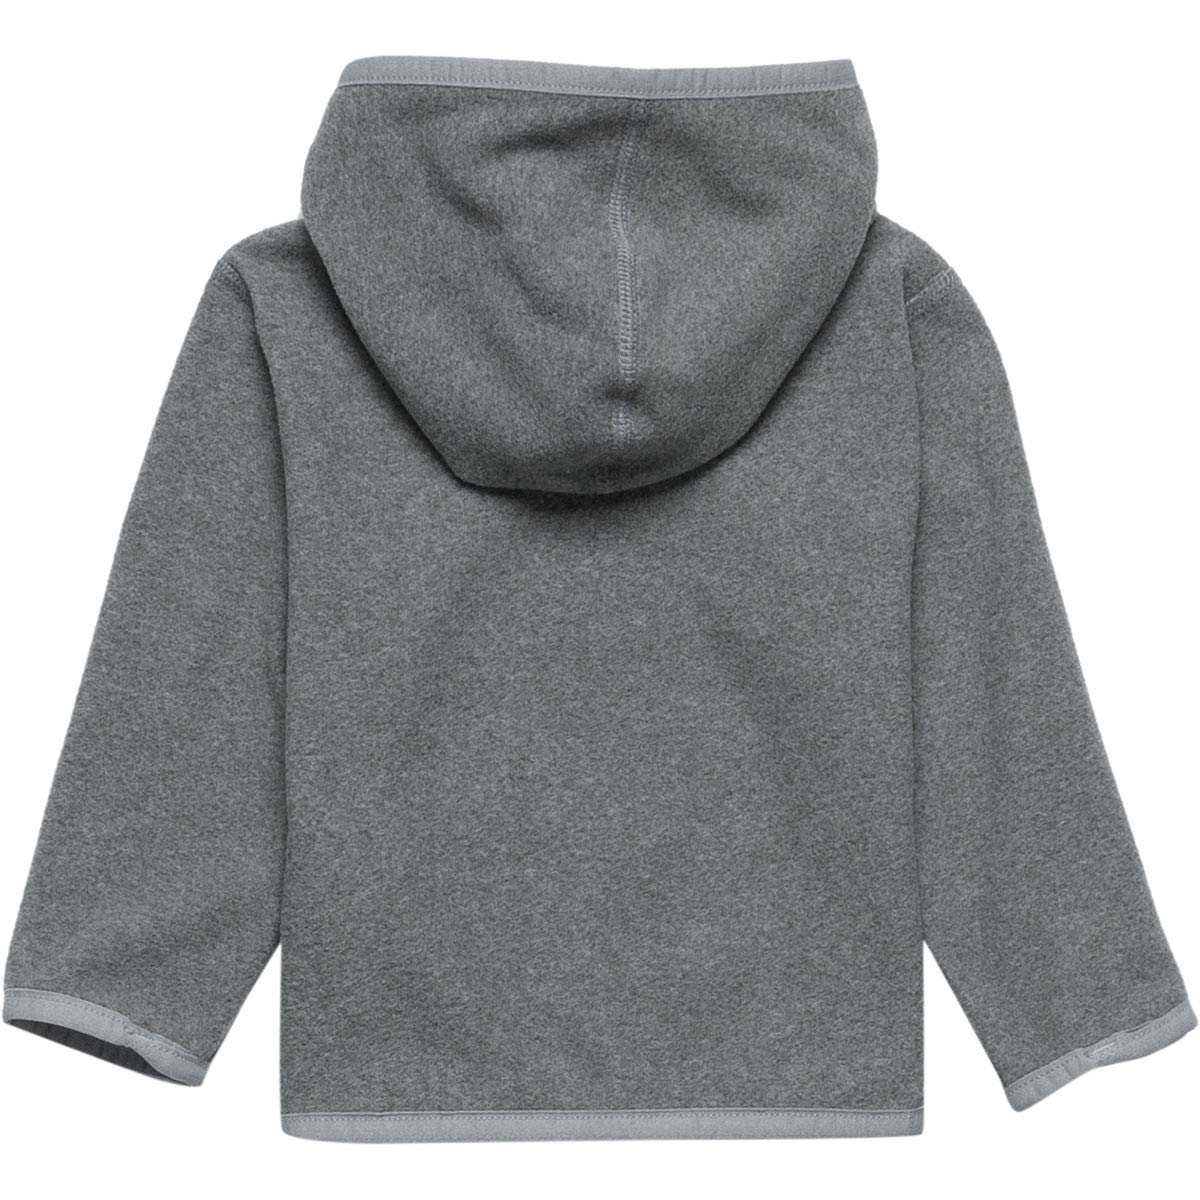 078e53fcf THE NORTH FACE Infant Glacier Full Zip Hoodie: Amazon.ca: Clothing ...